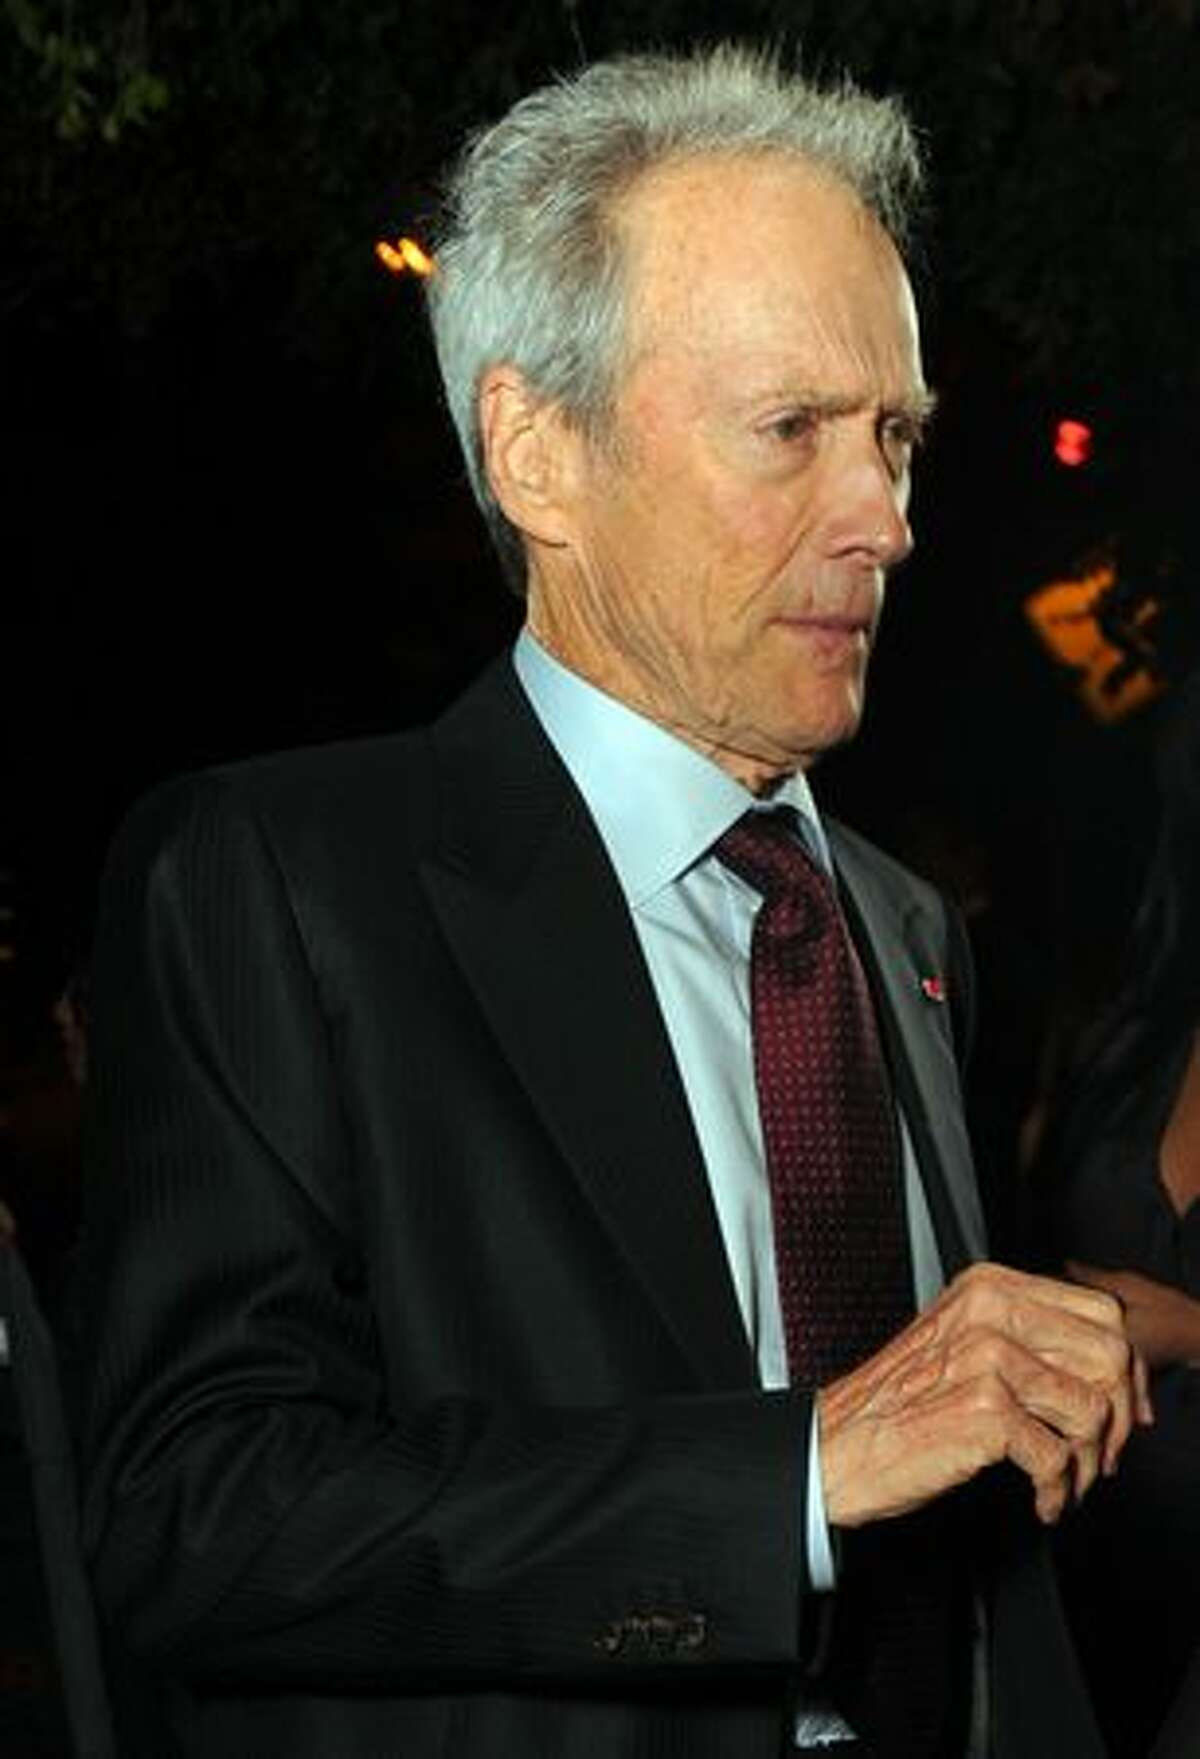 Actor/director Clint Eastwood attends the party.